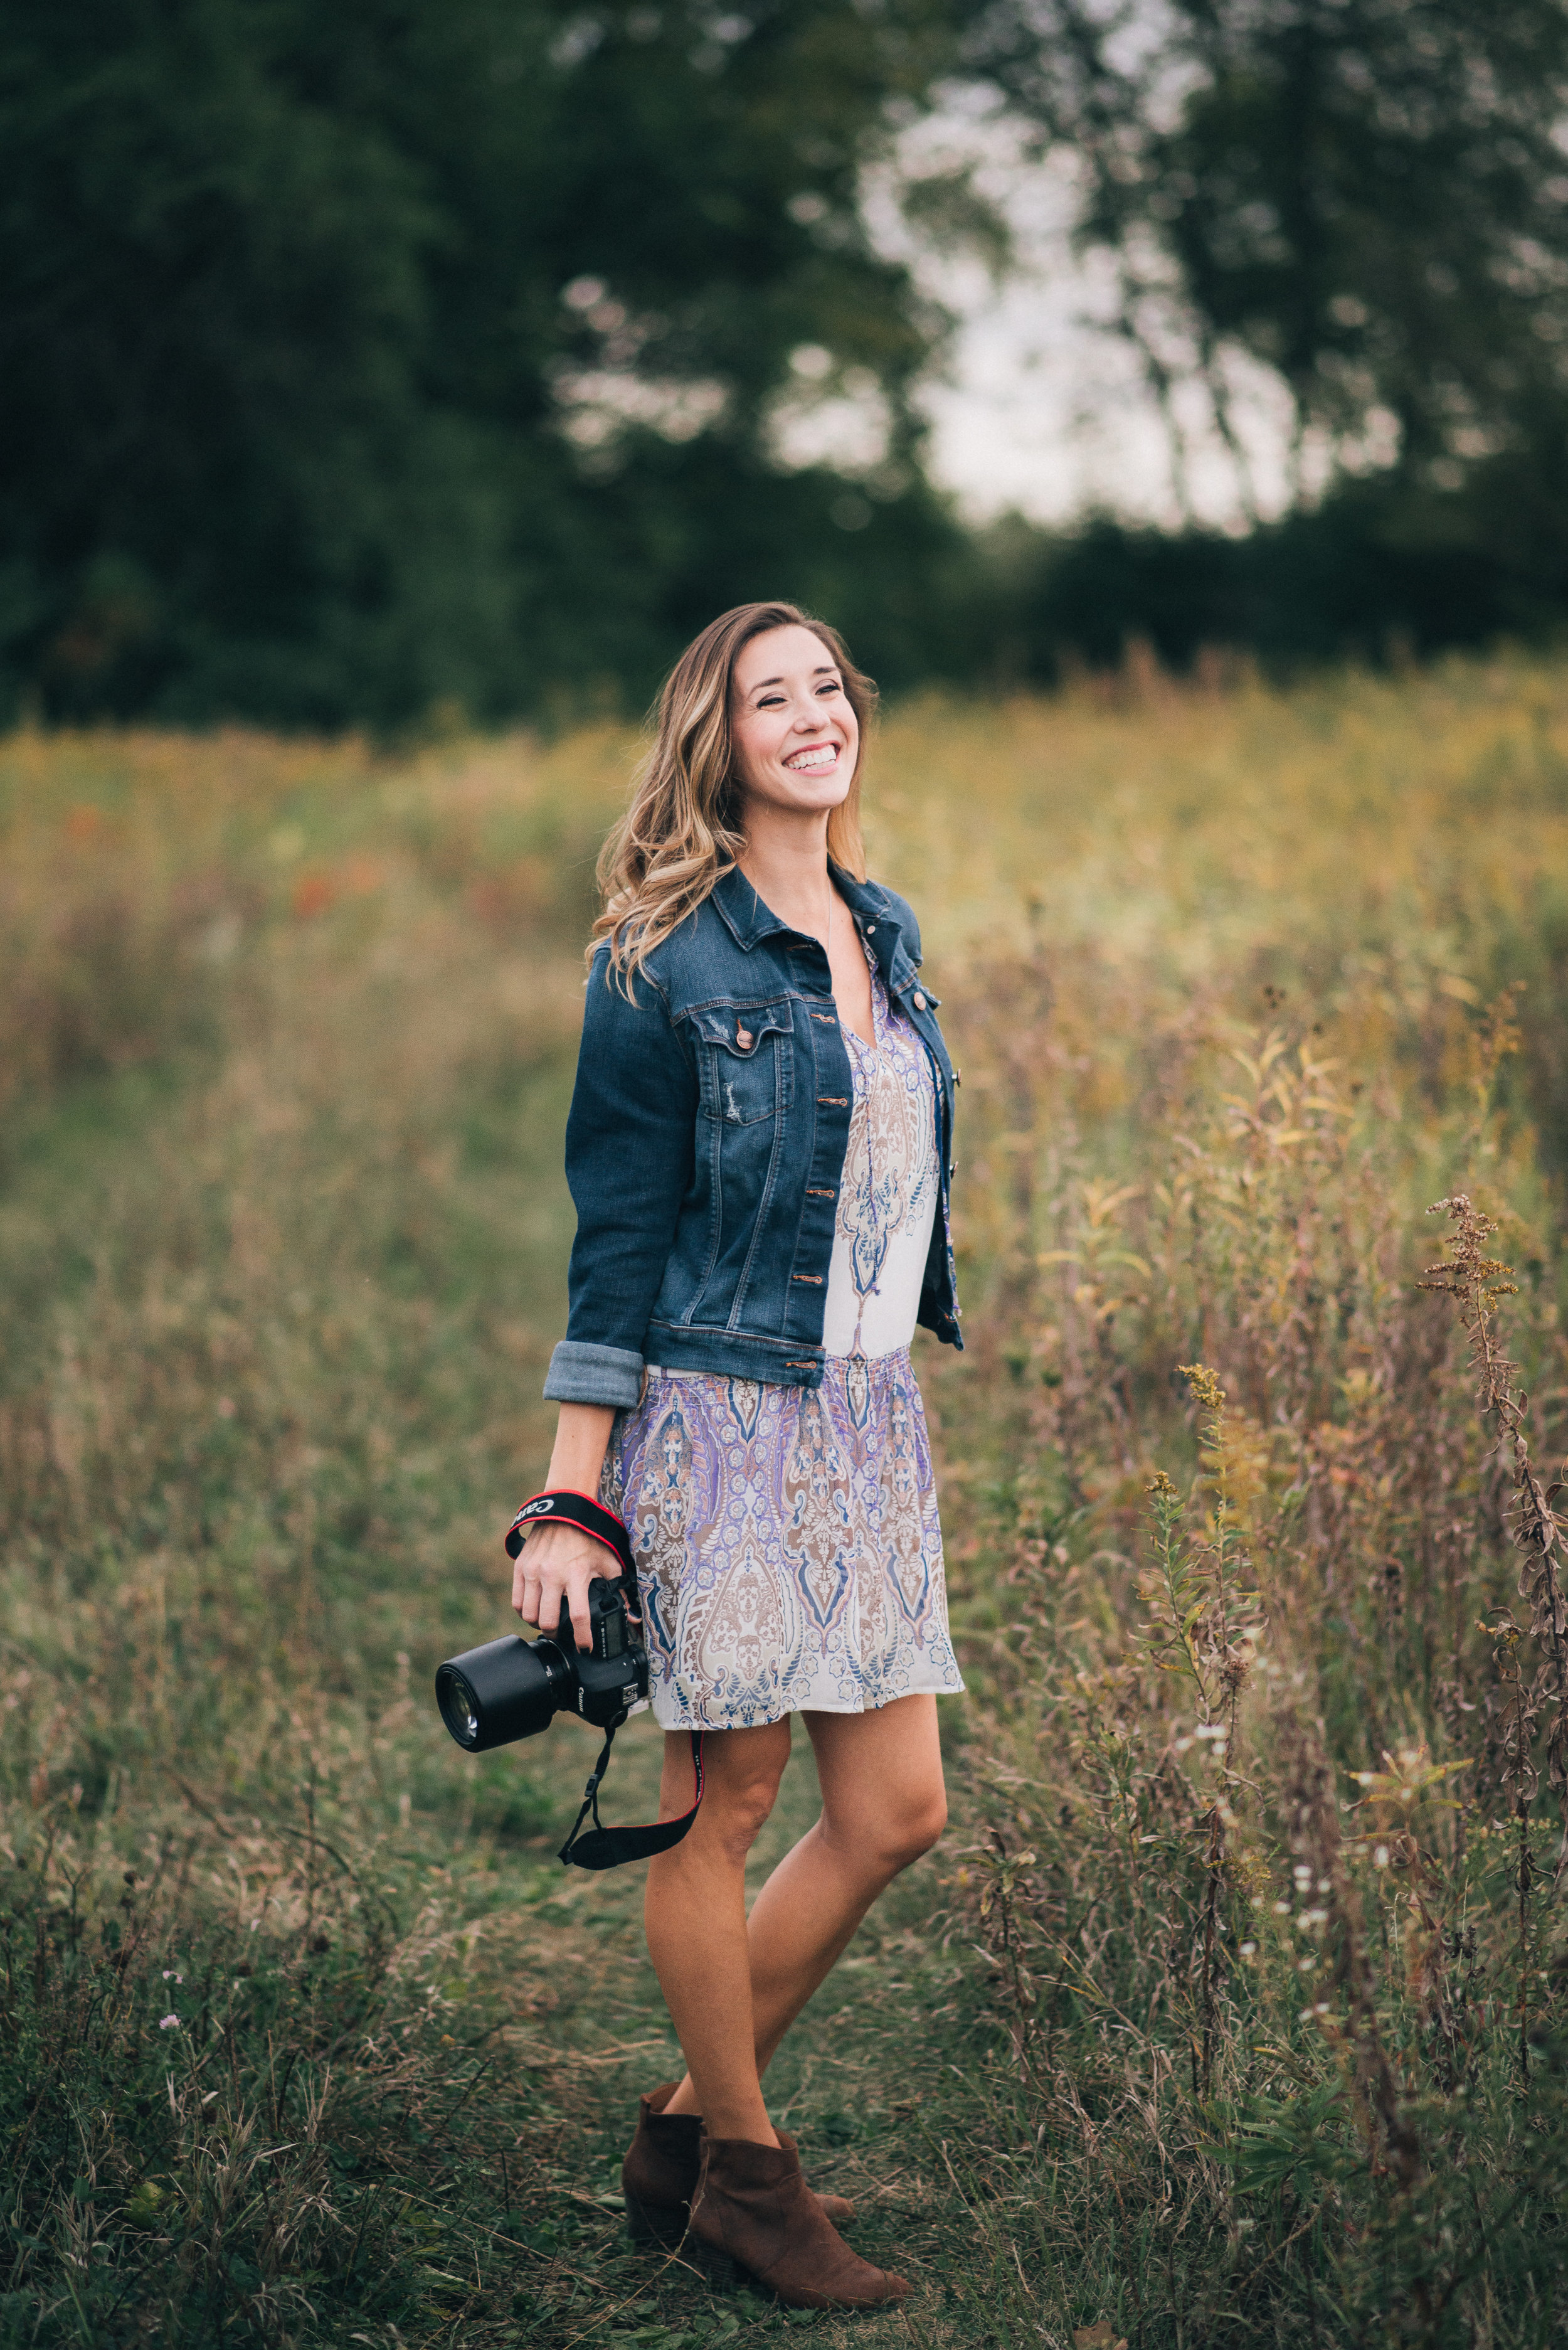 Copy of Naperville Photographer